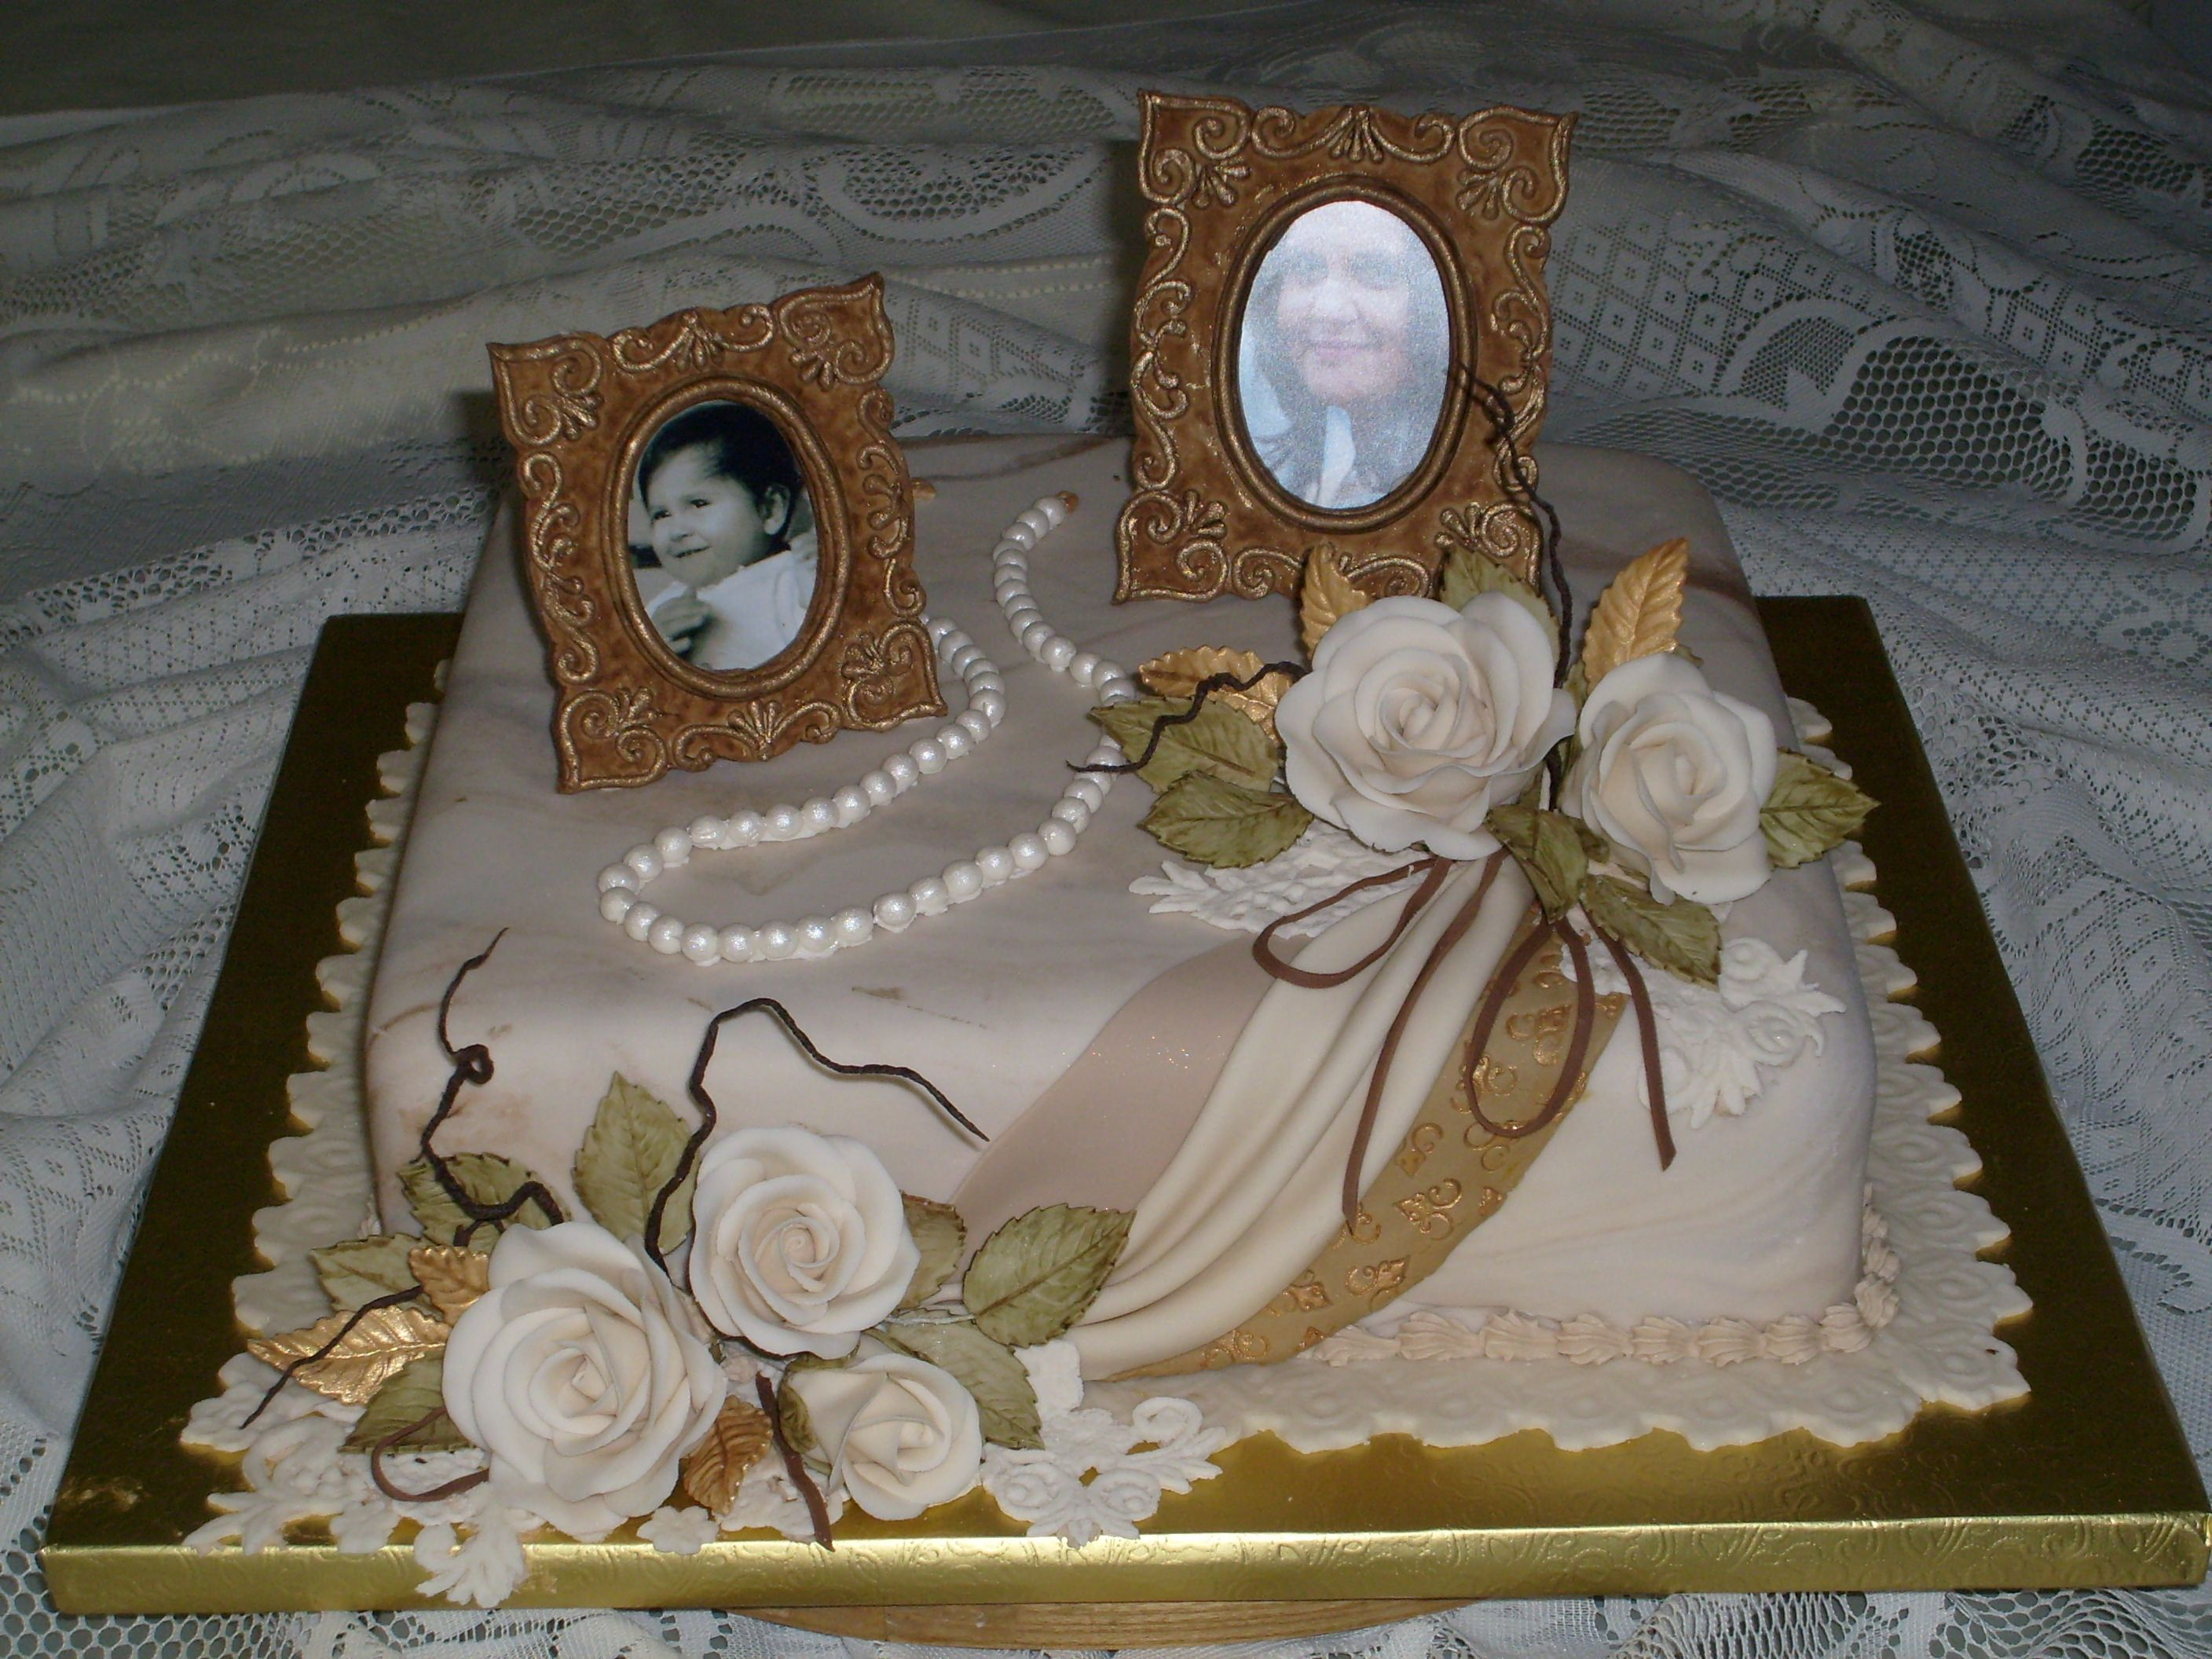 Decorated 50th birthday cakes ideas 37049 50th birthday ca for 50th birthday cake decoration ideas